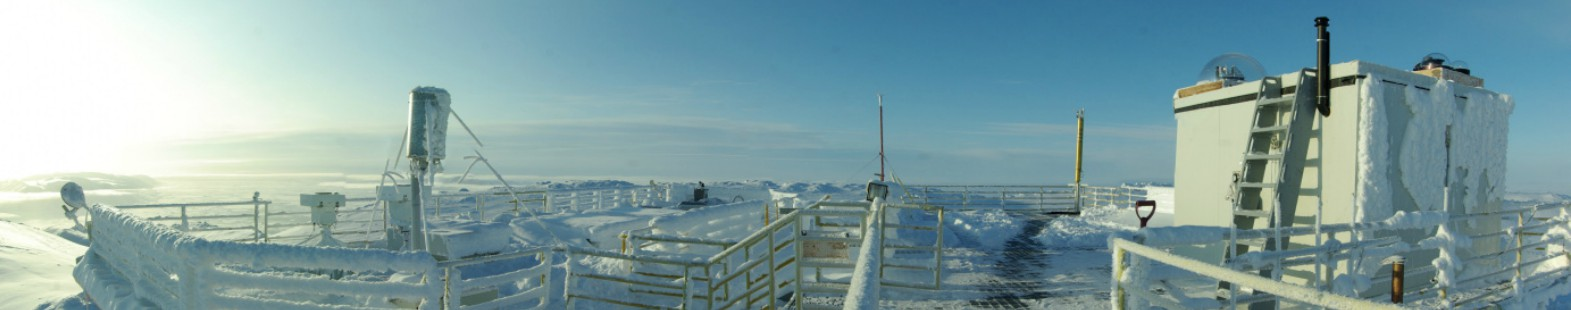 Photo shows the roof of the laboratory at PEARL, containing numerous atmospheric monitoring devices.